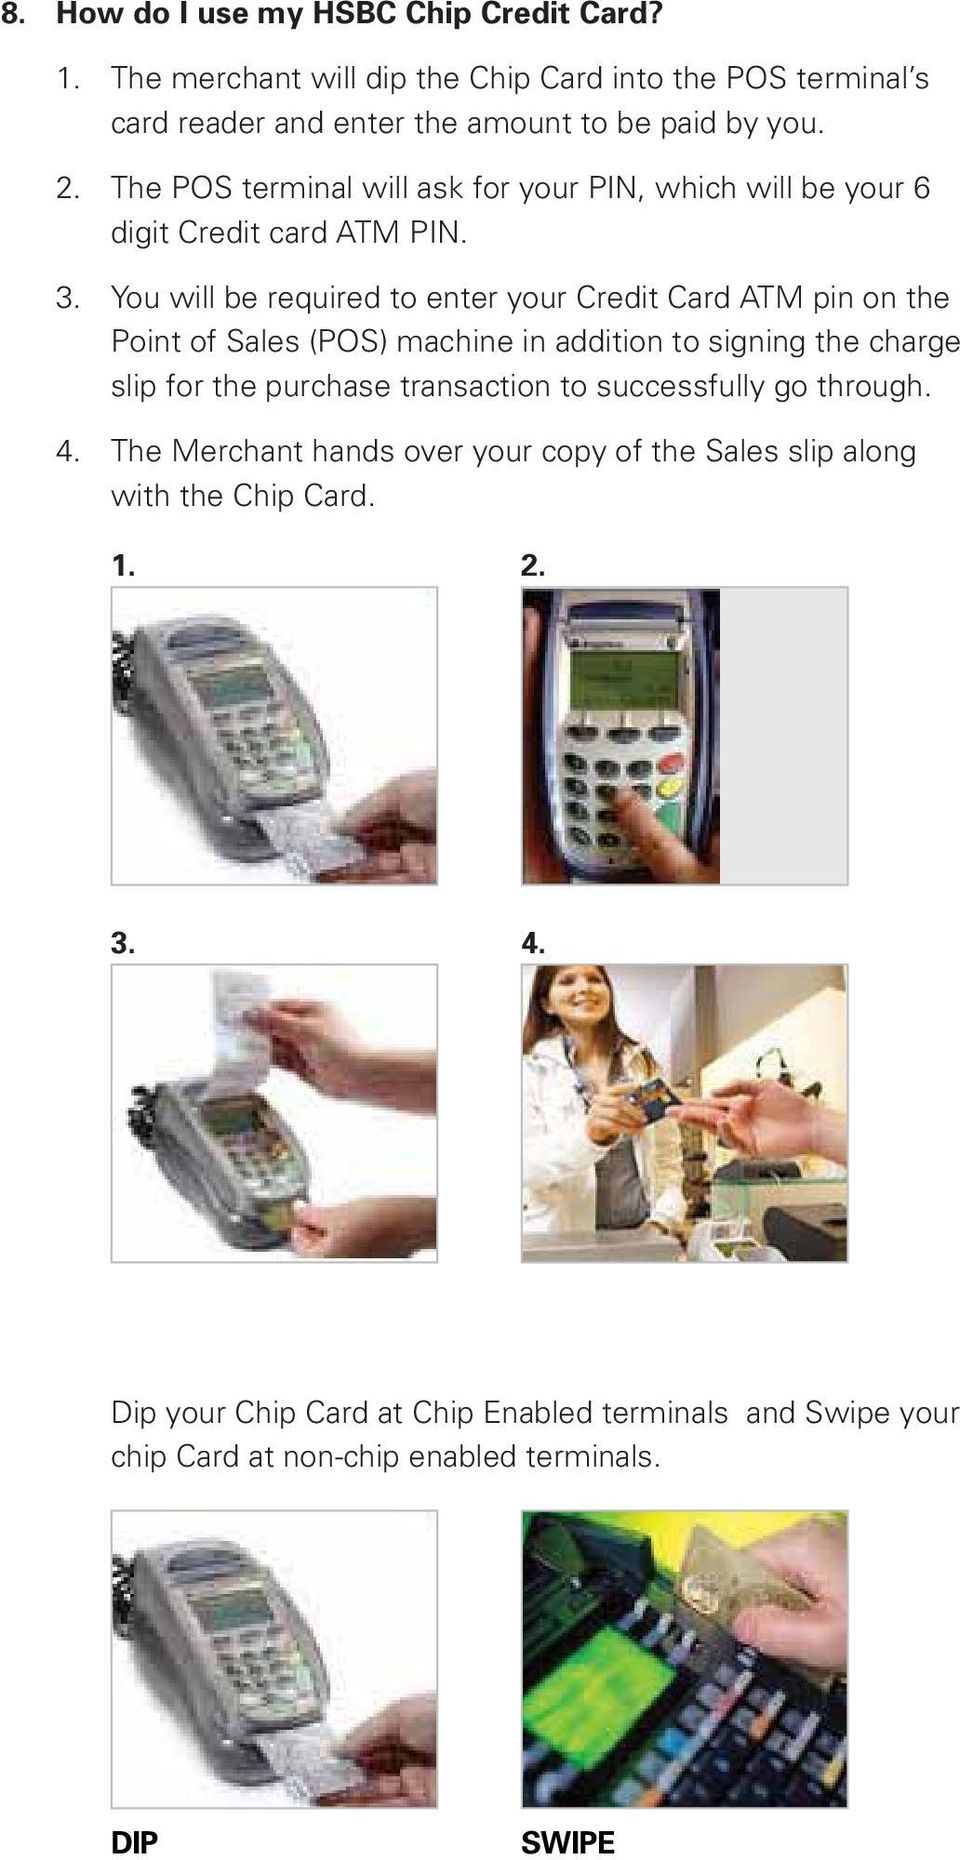 You will be required to enter your Credit Card ATM pin on the Point of Sales (POS) machine in addition to signing the charge slip for the purchase transaction